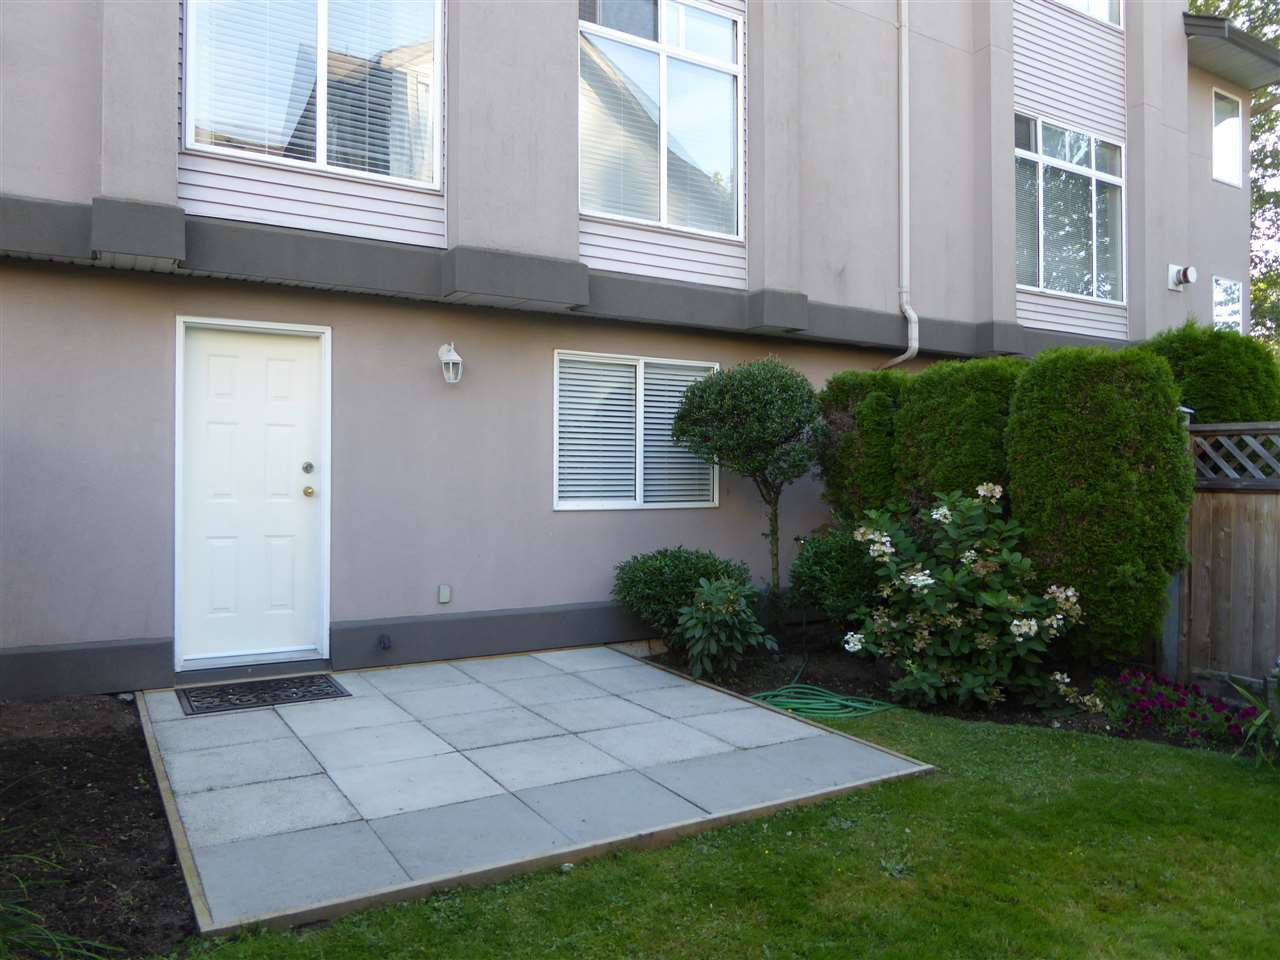 """Photo 16: Photos: 7 2538 PITT RIVER Road in Port Coquitlam: Mary Hill Townhouse for sale in """"RIVER COURT"""" : MLS®# R2392778"""